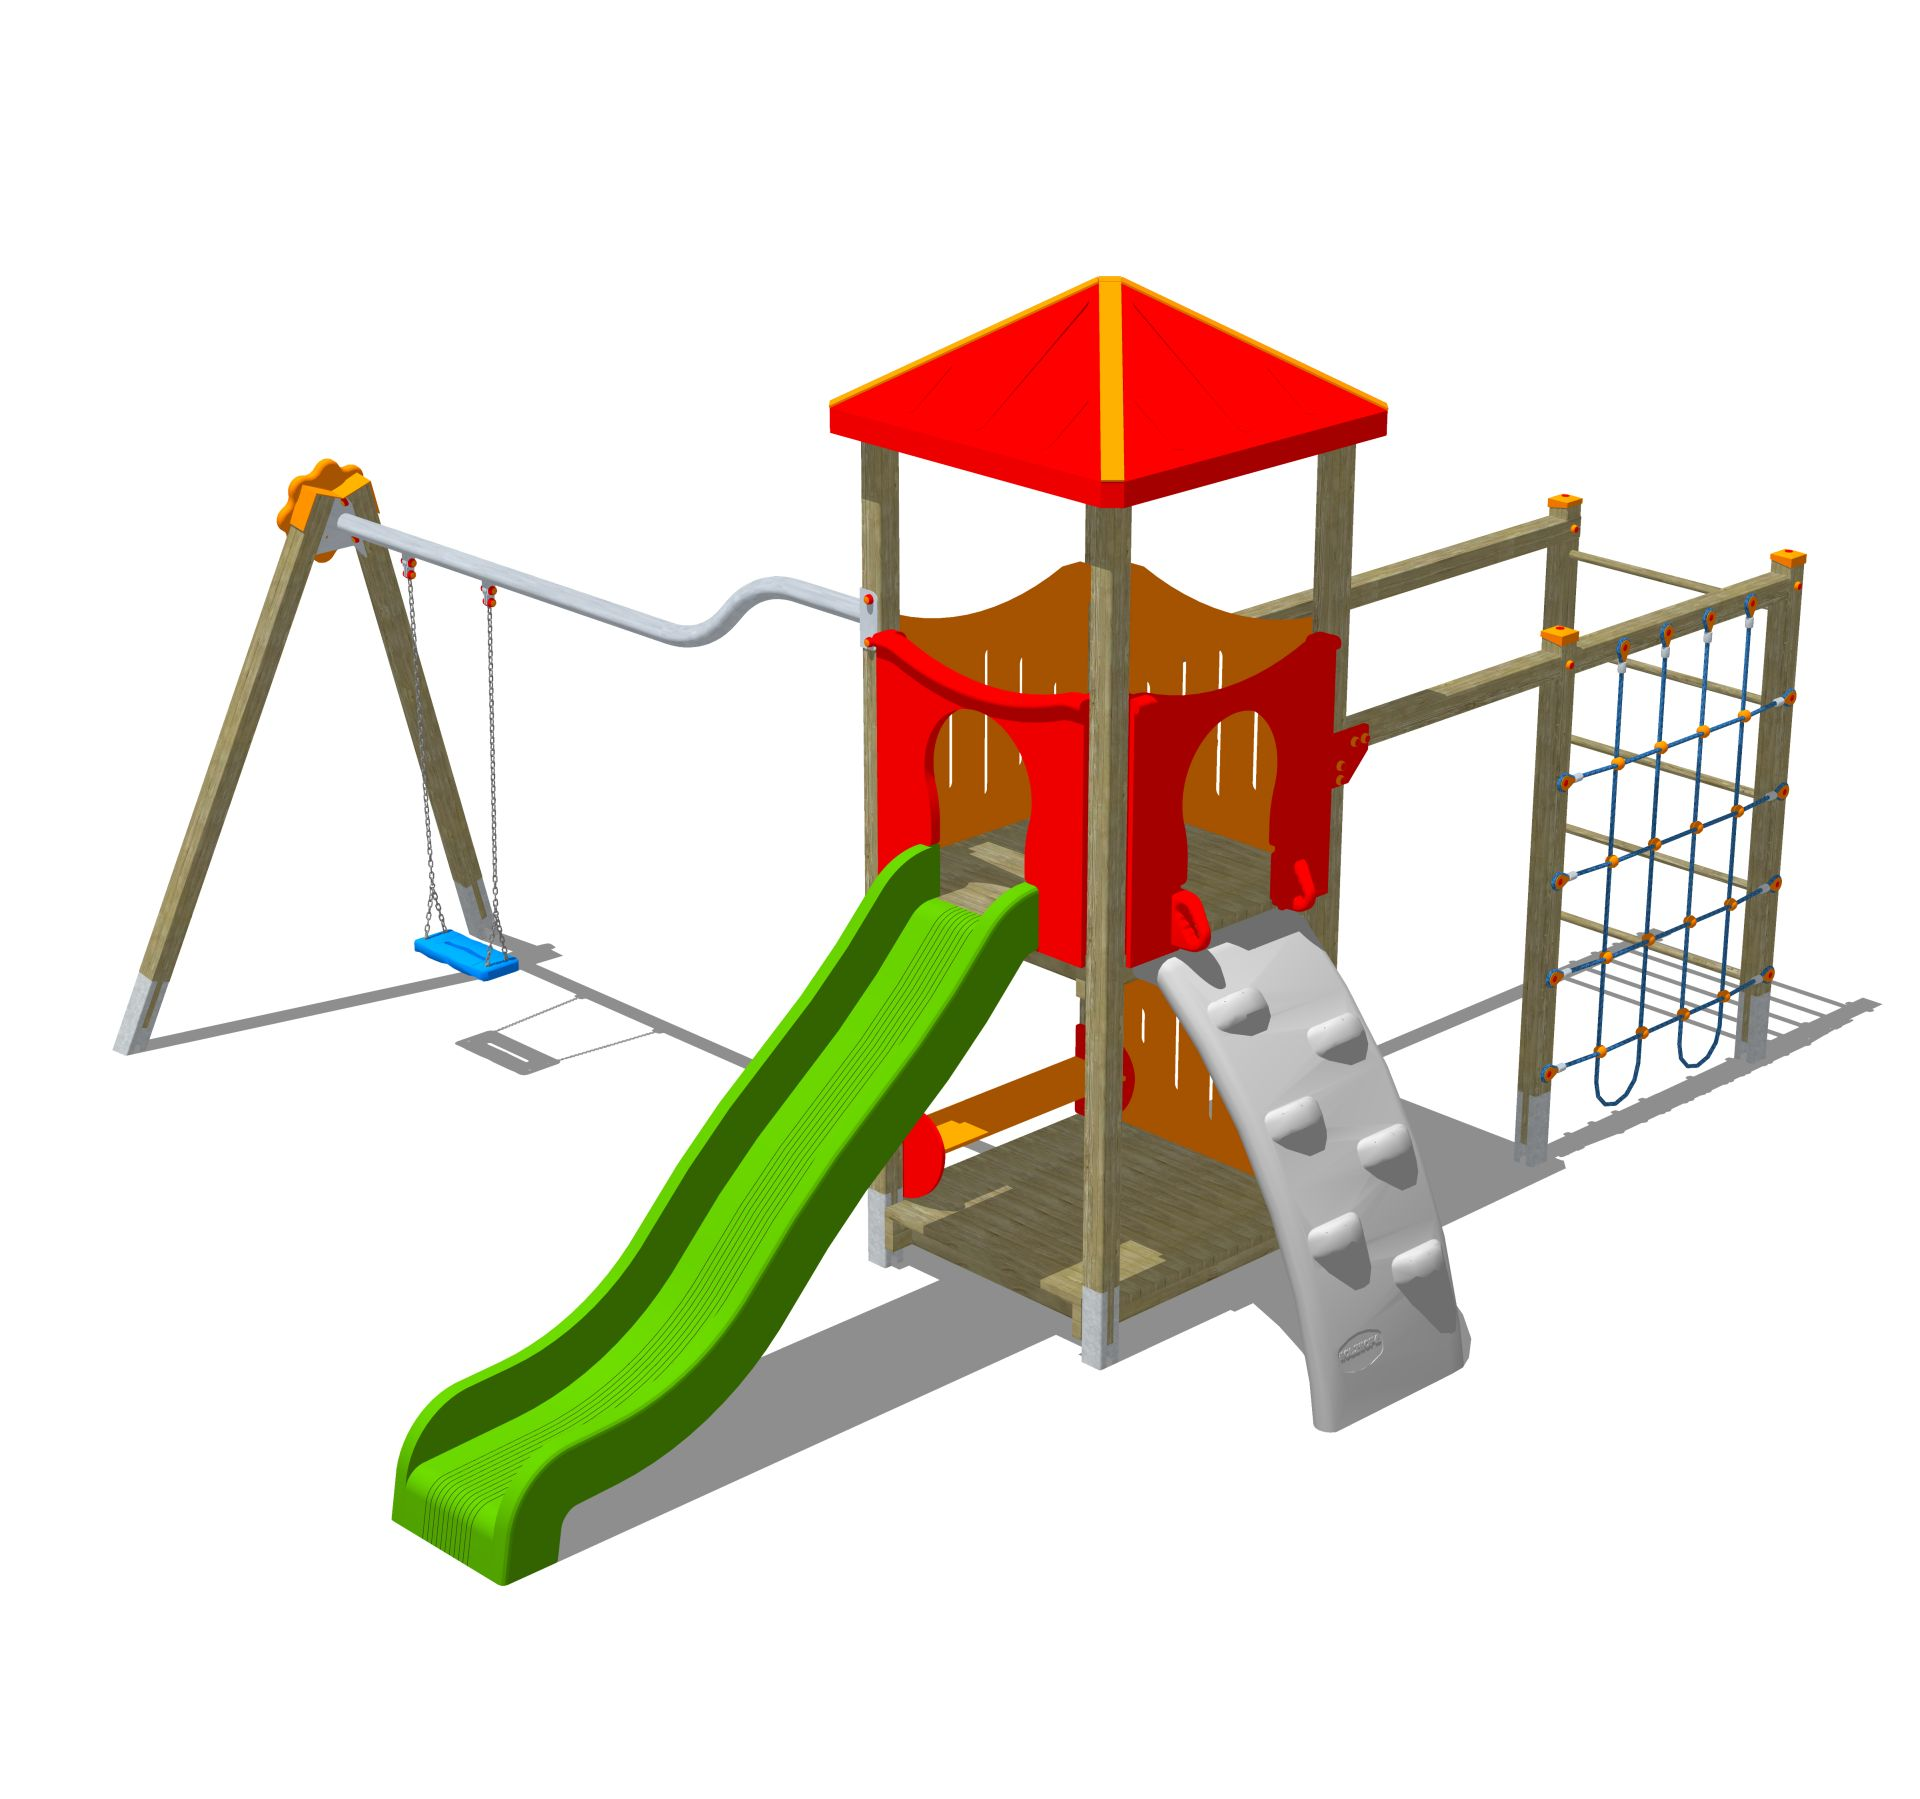 Holzhof MAX & SULTAN Max 1 tower, slide h 144, polyethylene ramp + swing 1 bucket seat + rope wall climber